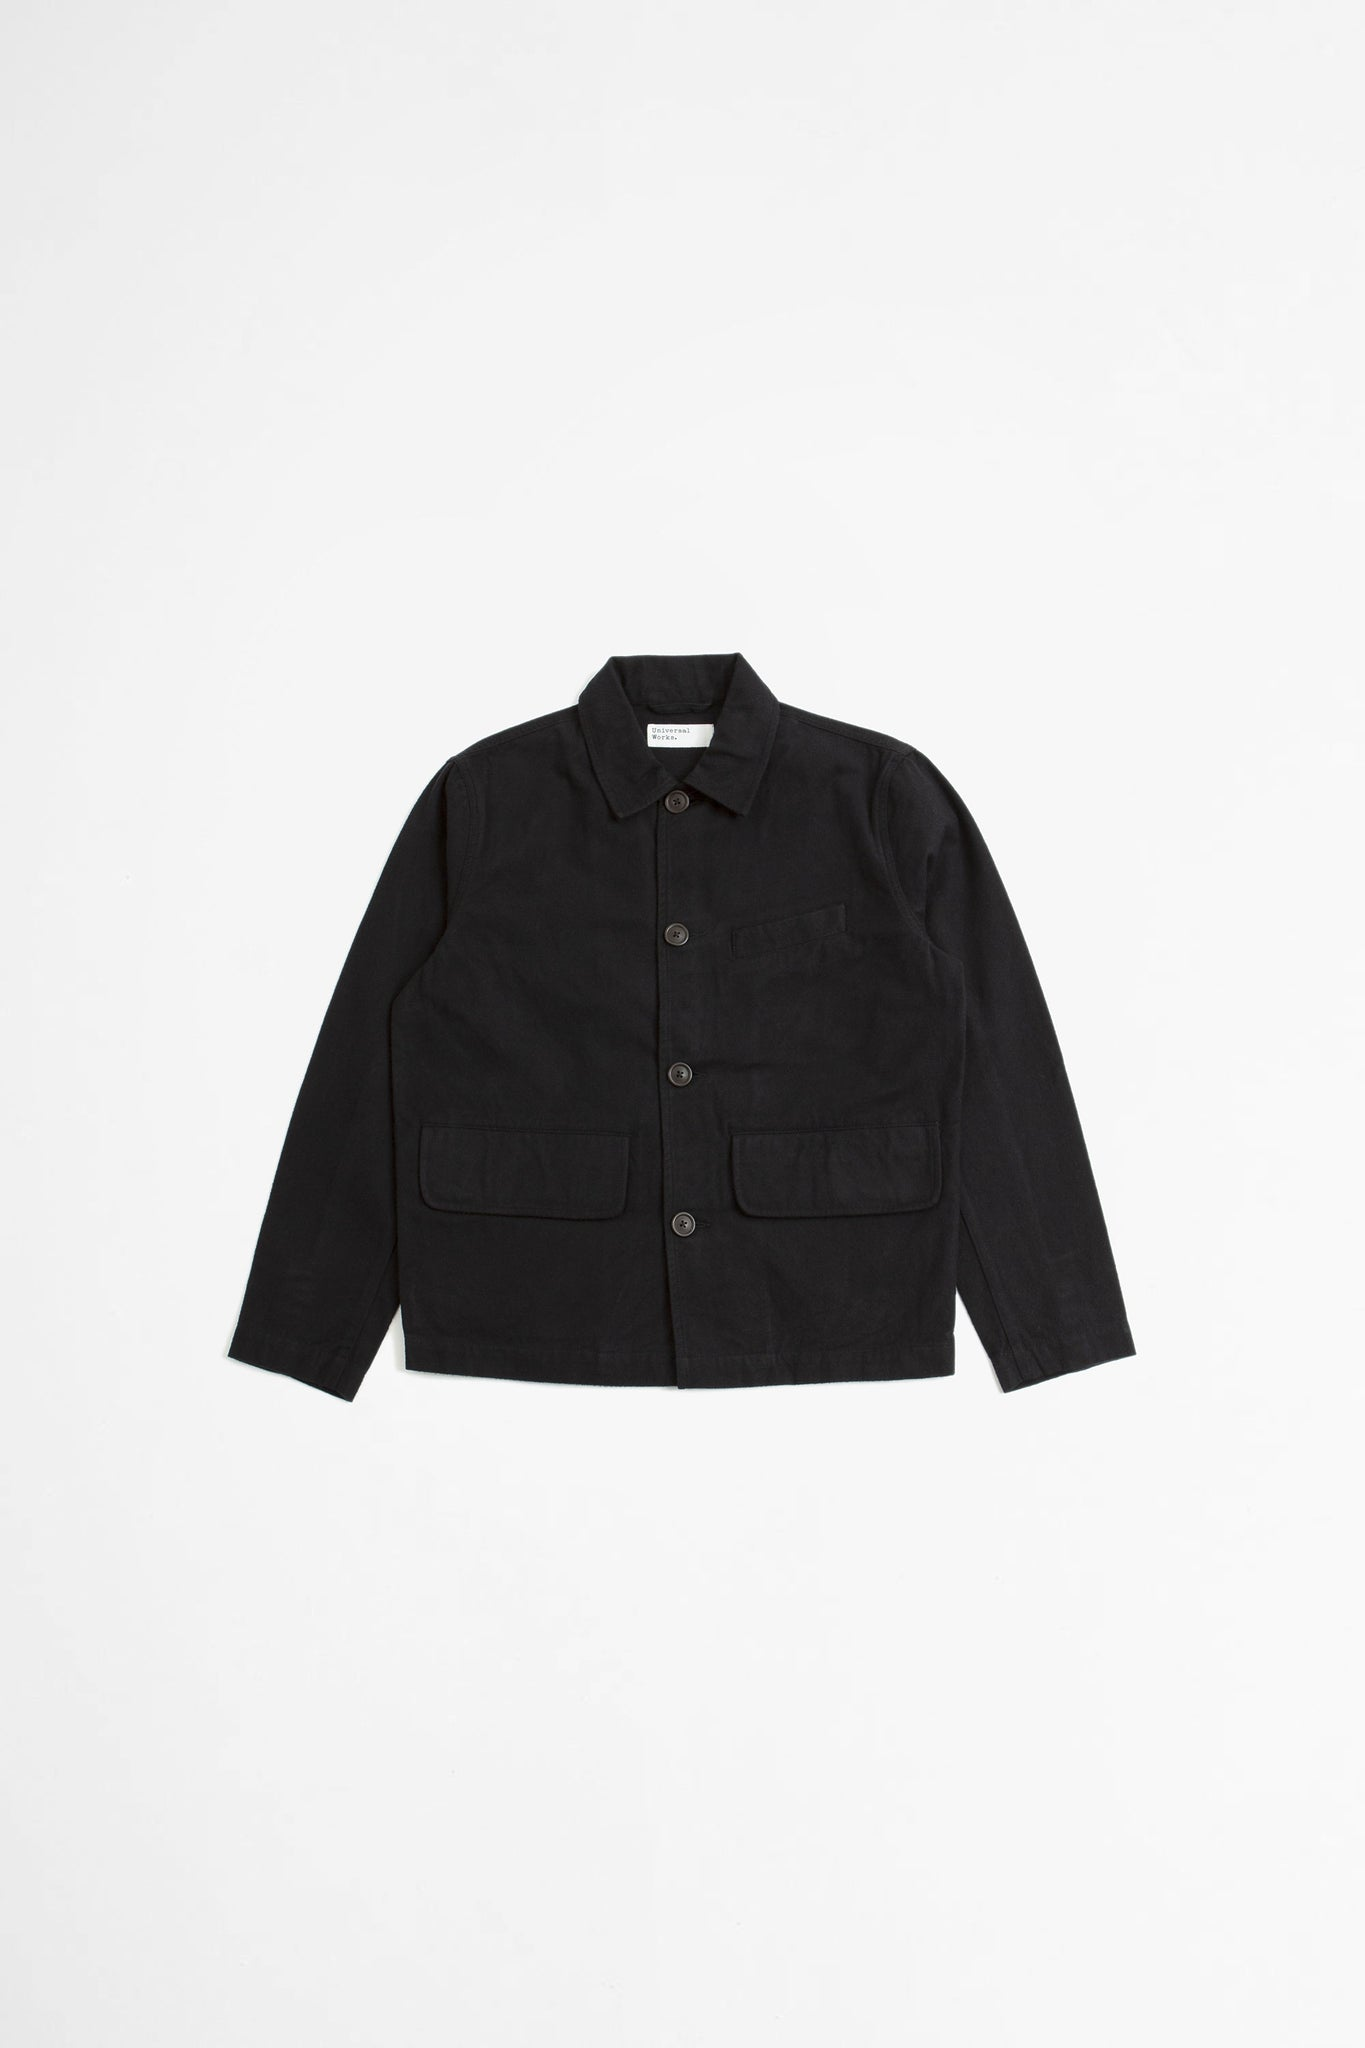 Warmus II jacket in black nebraska cotton